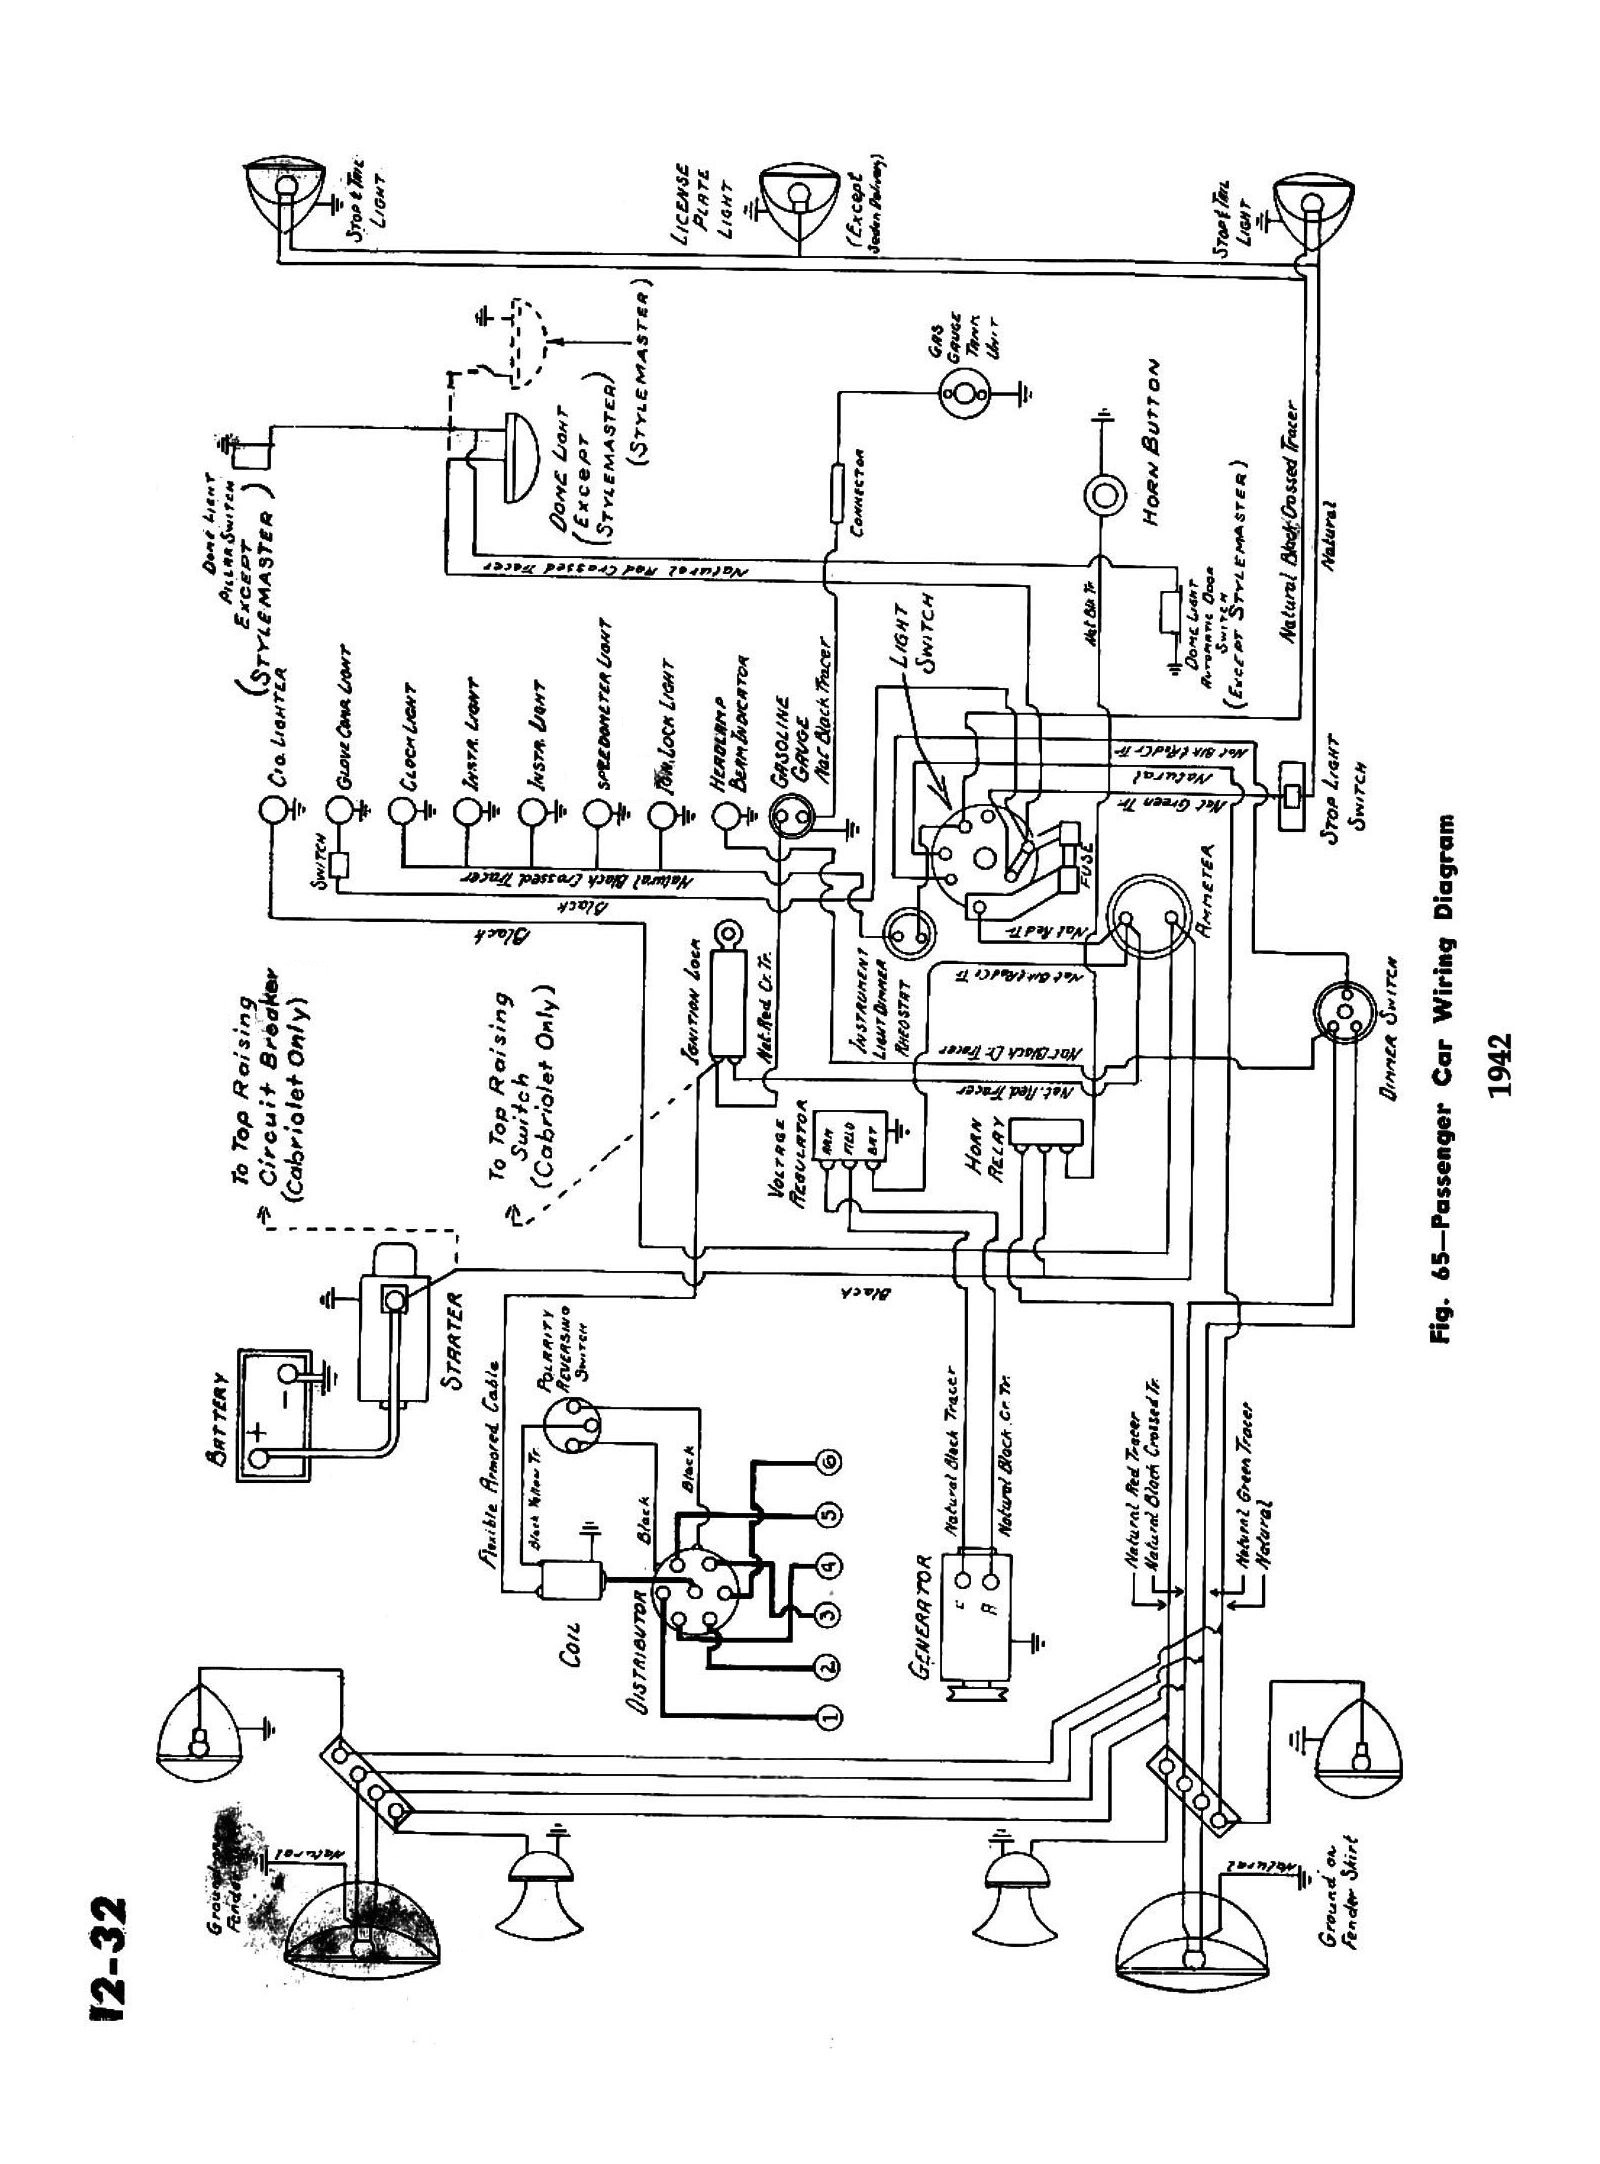 1948 Gmc Wiring Diagram Schematics 1956 Willys Wagon Chevy Diagrams Stereo For 1942 Passenger Car